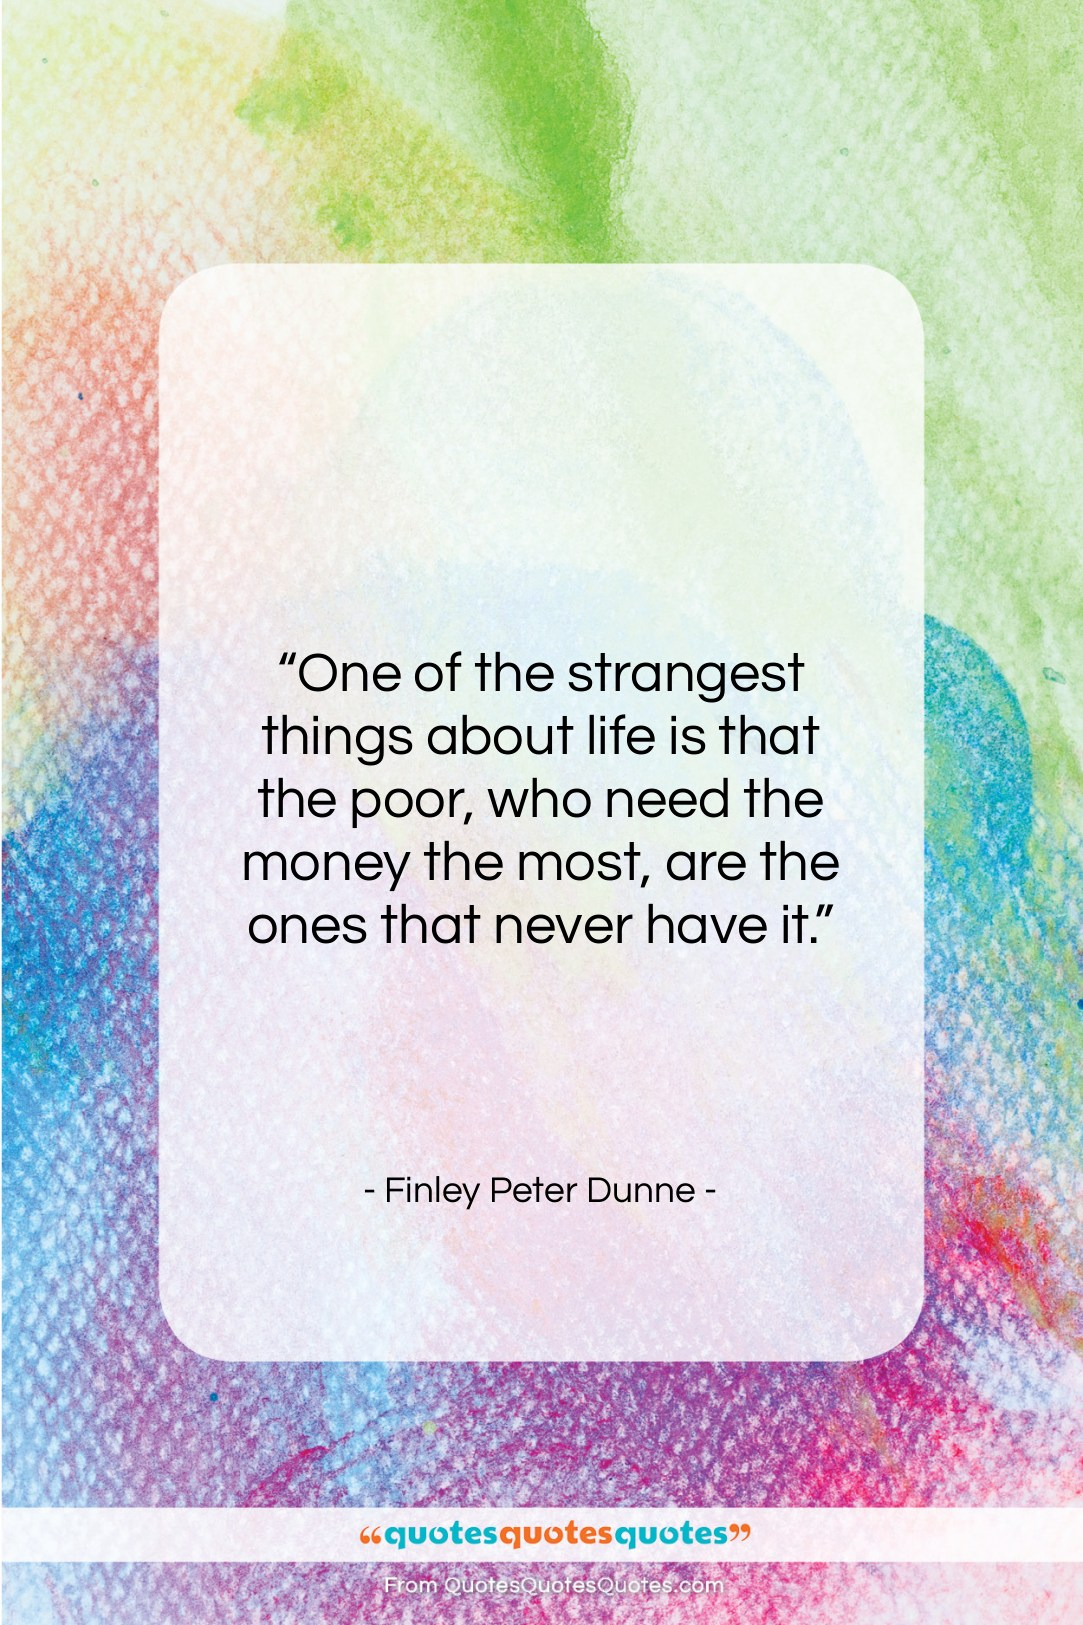 """Finley Peter Dunne quote: """"One of the strangest things about life…""""- at QuotesQuotesQuotes.com"""